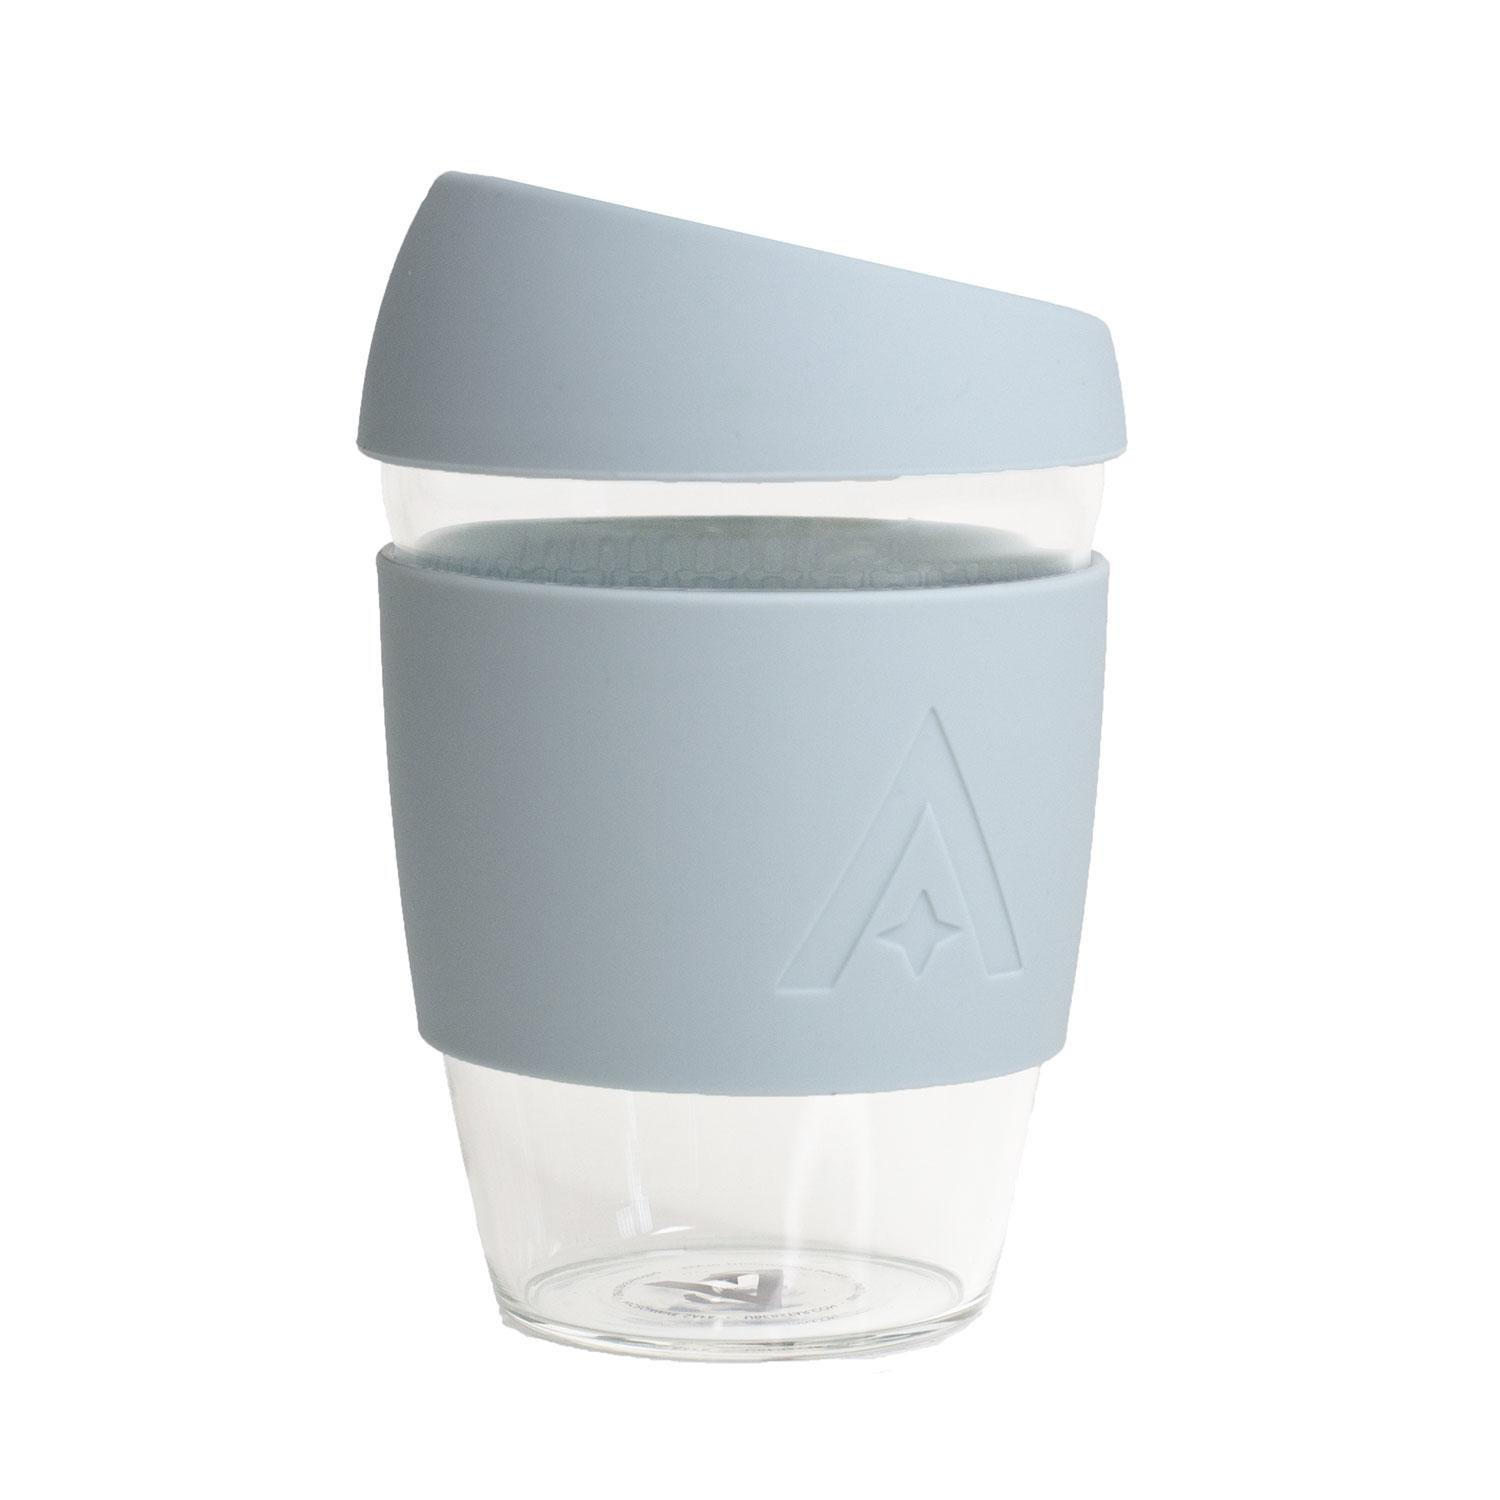 Uberstar Reusable Glass Travel Cup - Cool Blue - Only £14.99